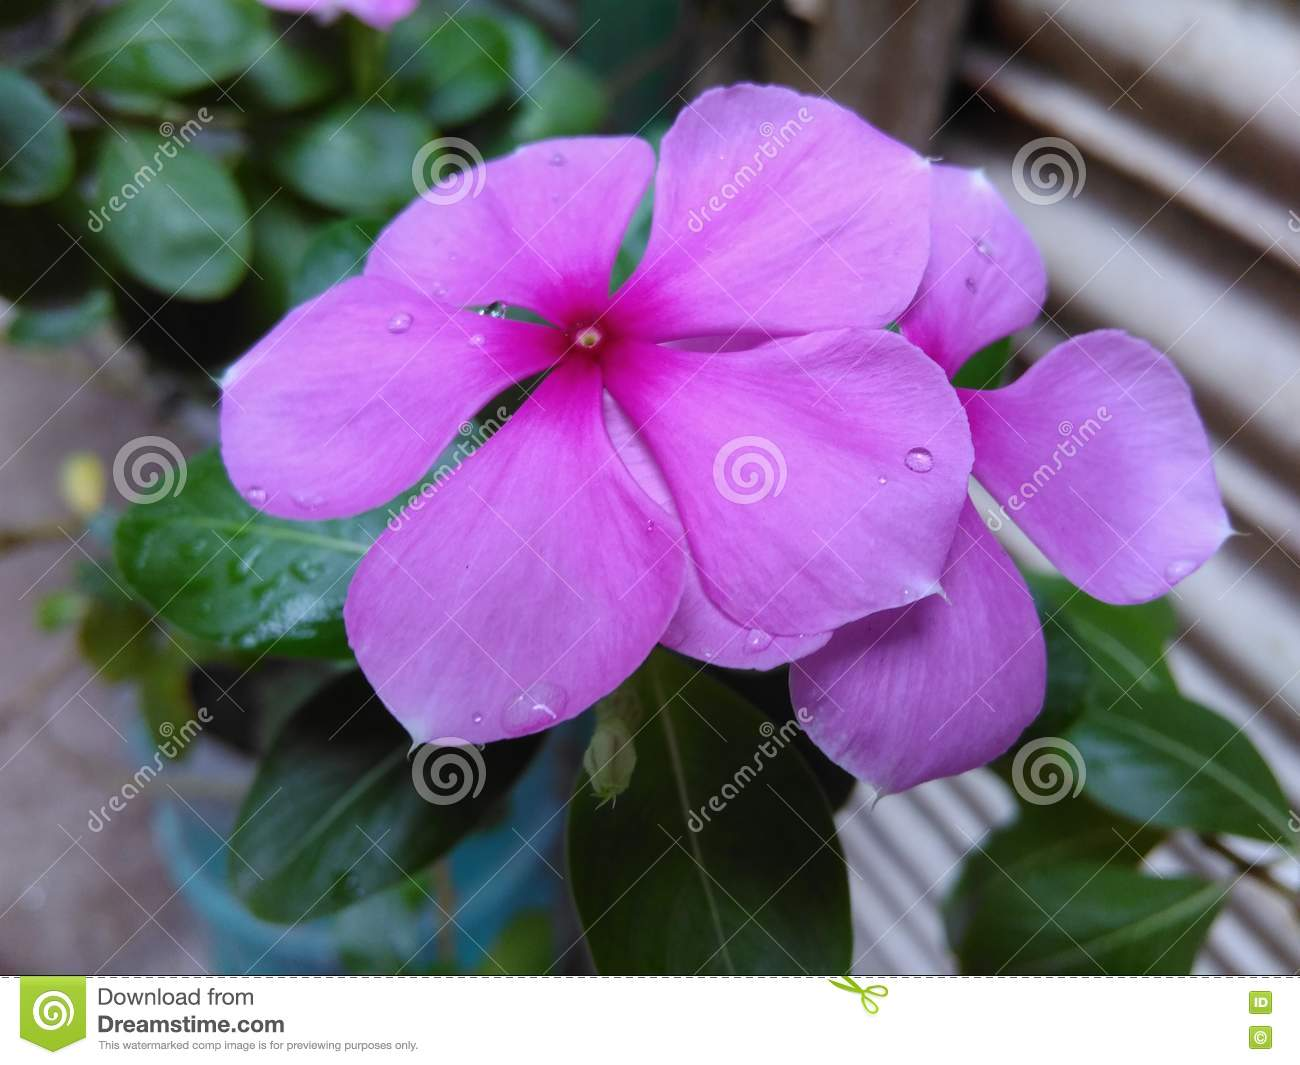 The most beautiful flower of the world stock photo image of season download the most beautiful flower of the world stock photo image of season evening mightylinksfo